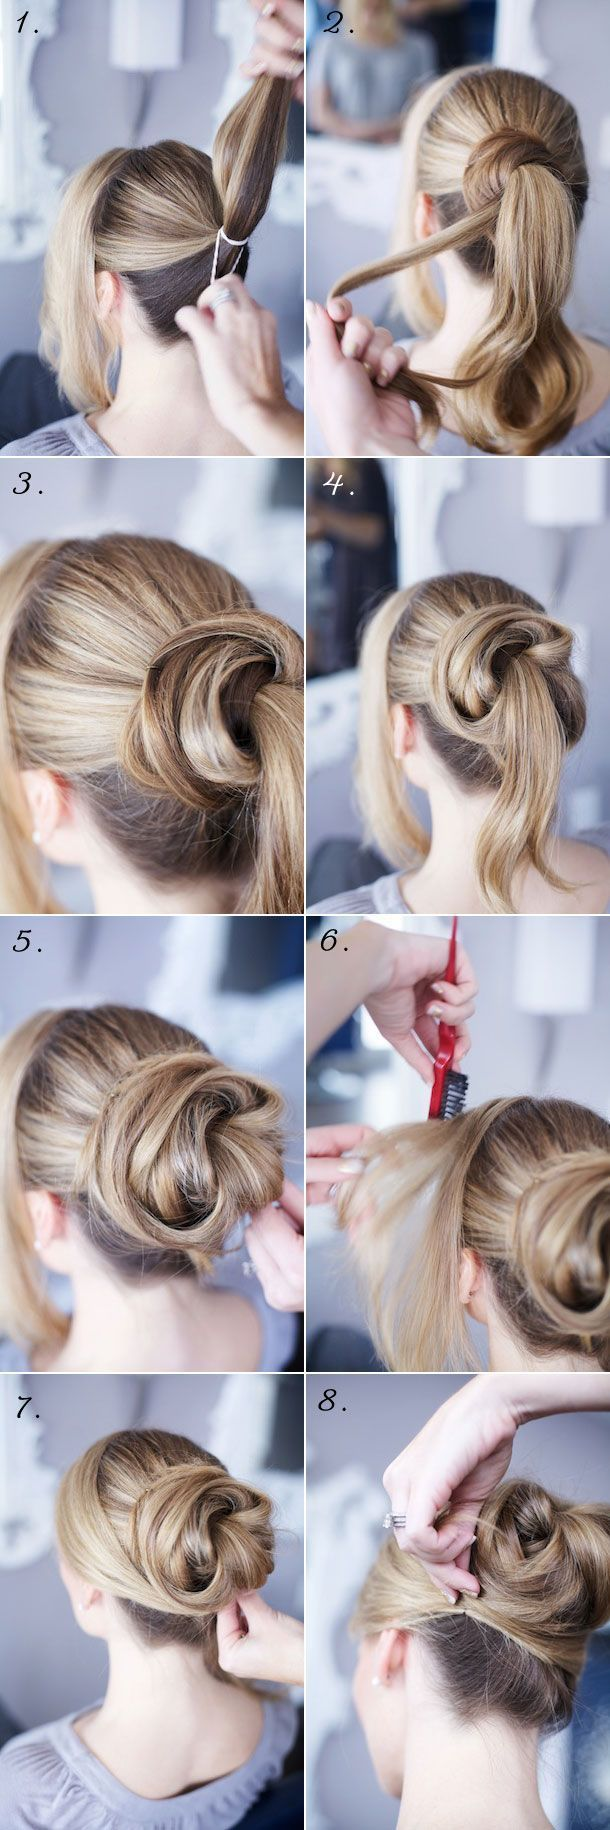 Easy updo! with Visual instructions for people like me!!!